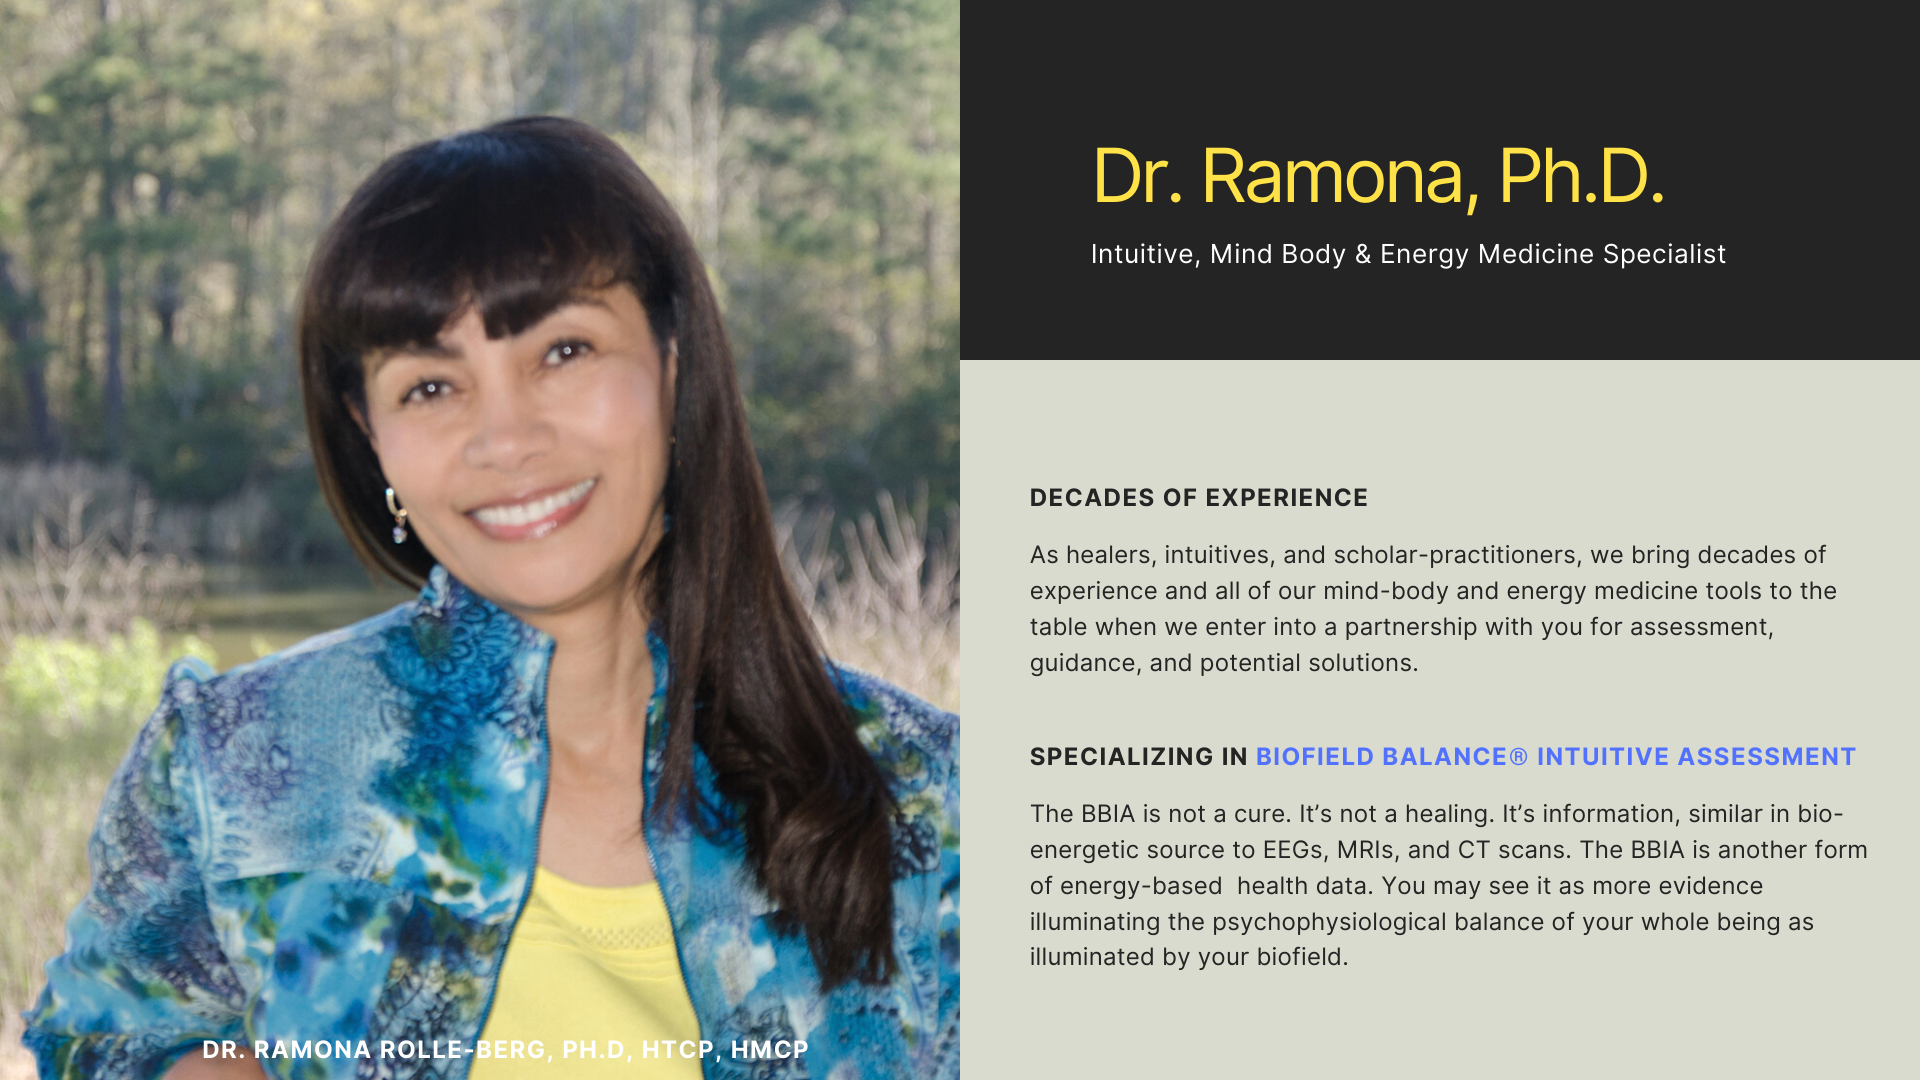 Welcome and photo of Dr. Ramona Rolle-Berg, Ph.D.